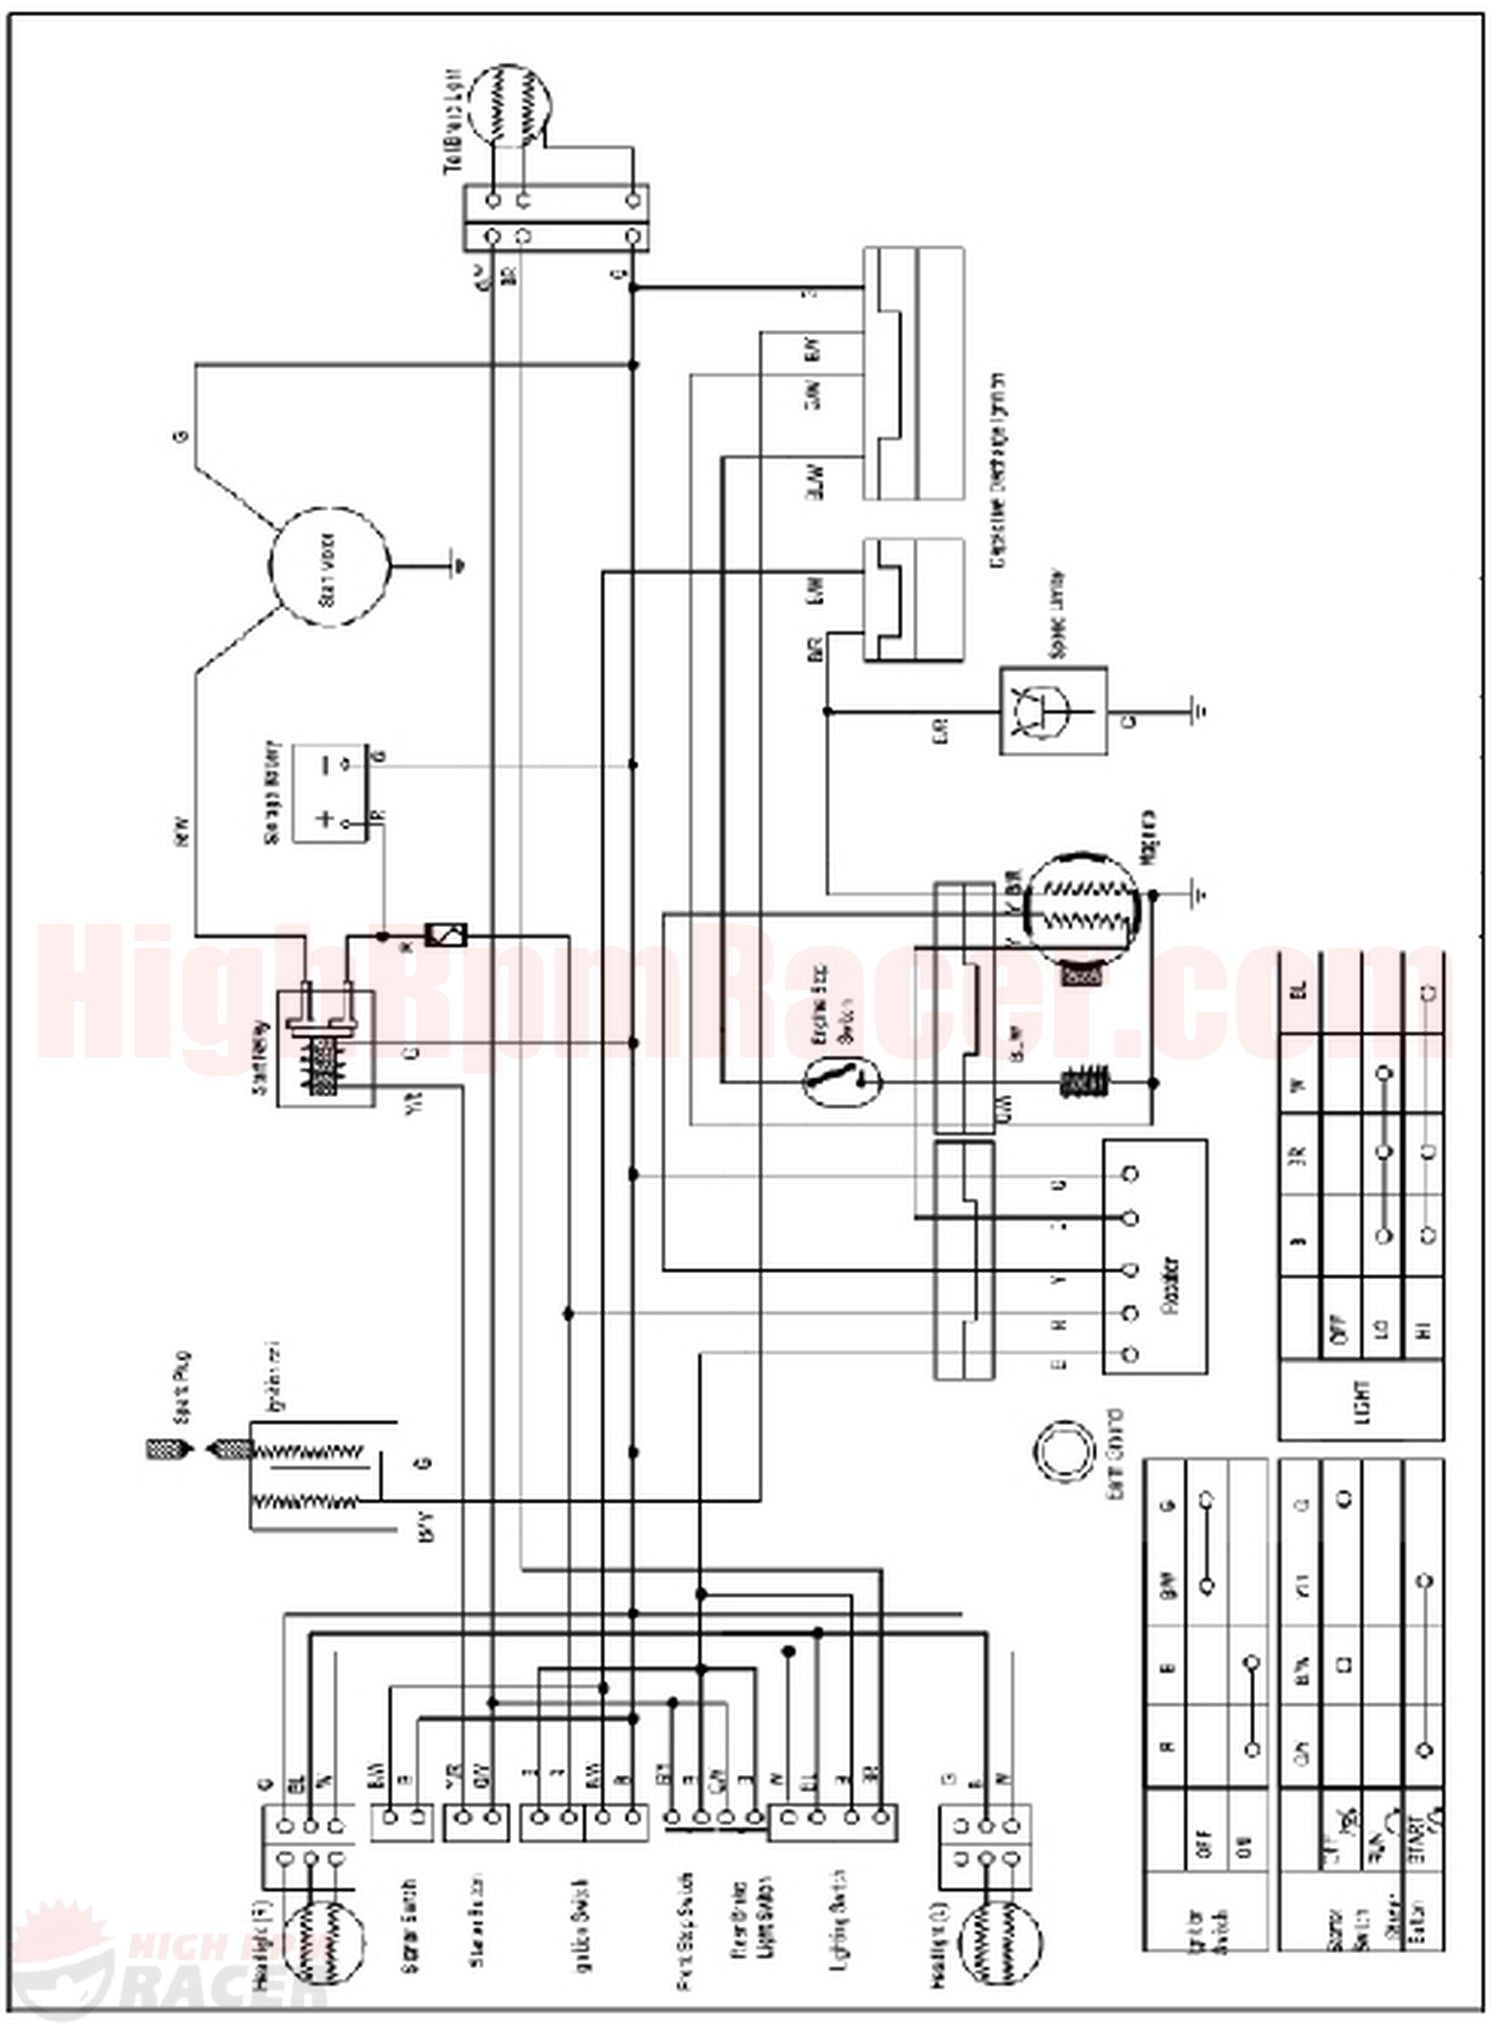 roketa 90cc atv wiring diagram wiring diagram Atv Winches Wiring Diagram kazuma 250cc atv wiring diagram get free image about wiring diagramroketa 90cc atv wiring diagram wiring